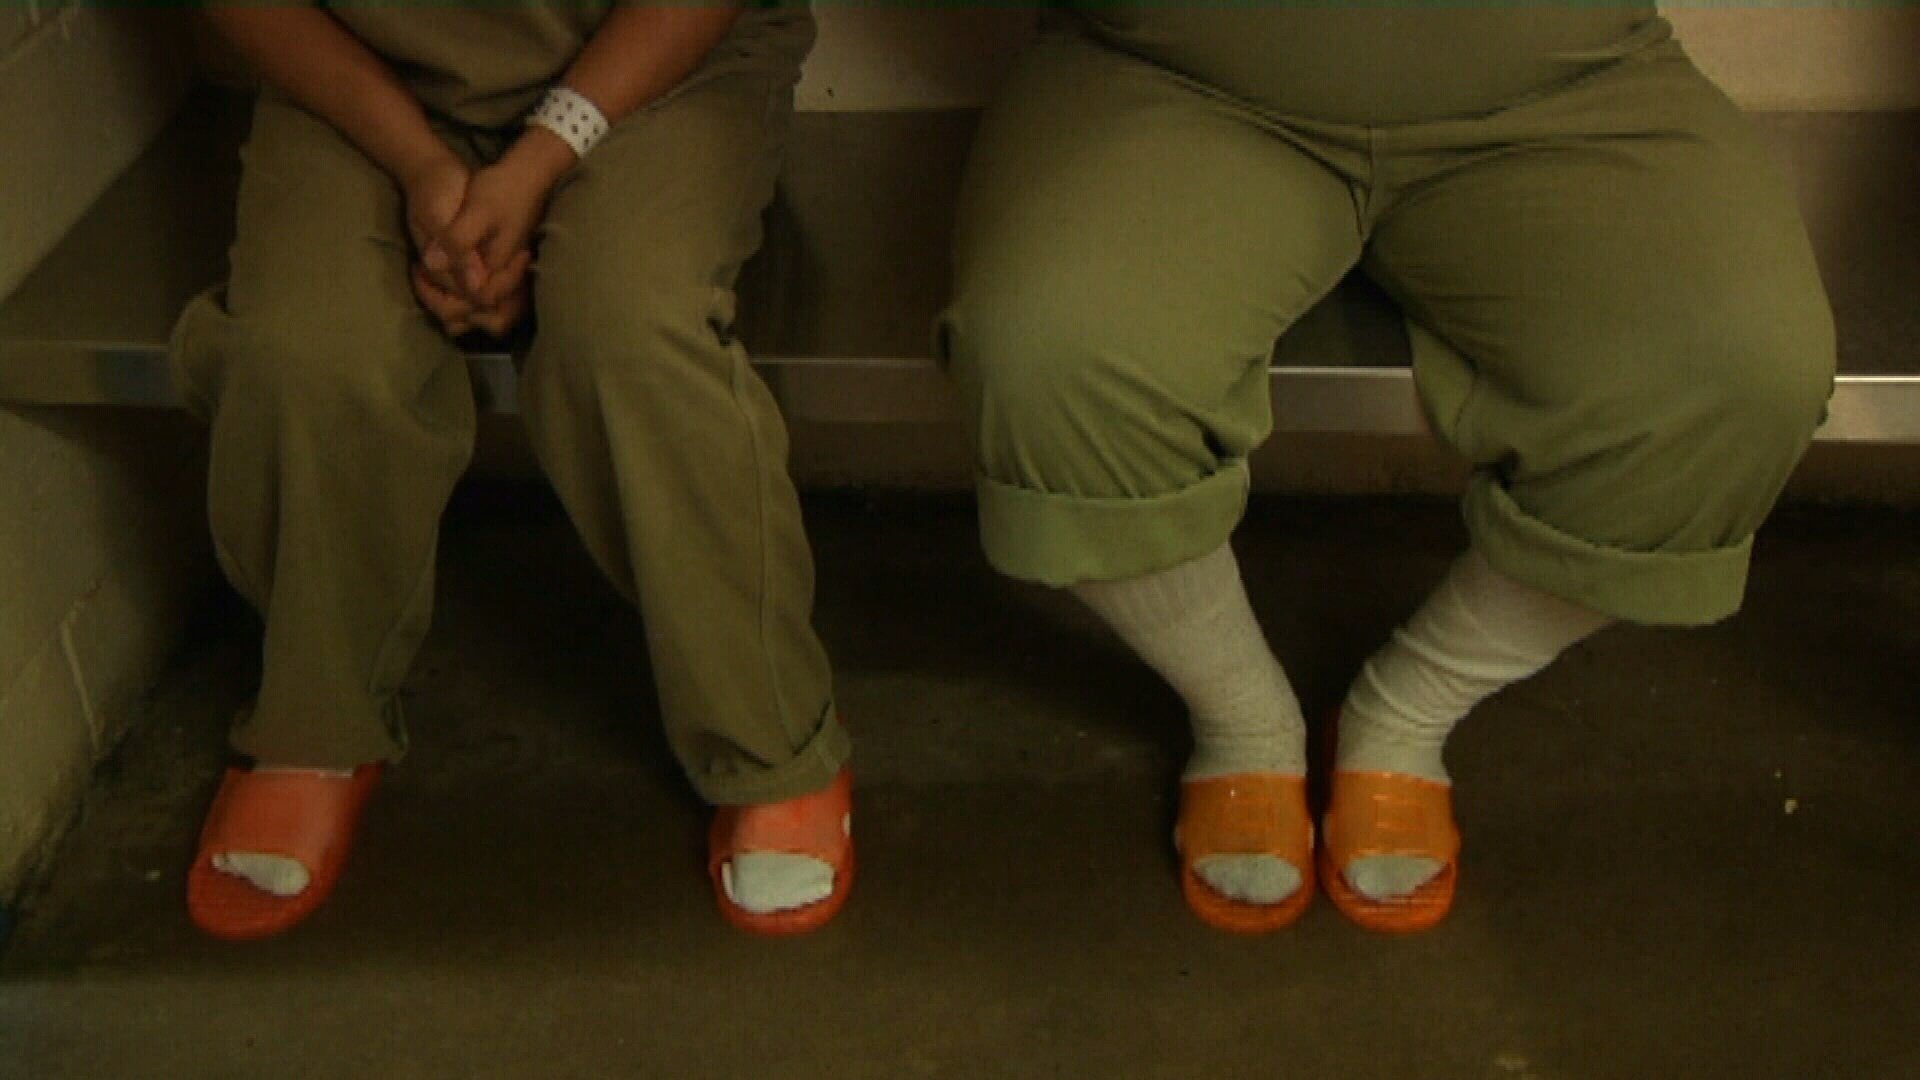 Sheriff Jim Kaelin requested the federal inmates be moved to open up beds for general population inmates, but the county stands to lose funding if the federal inmates move.